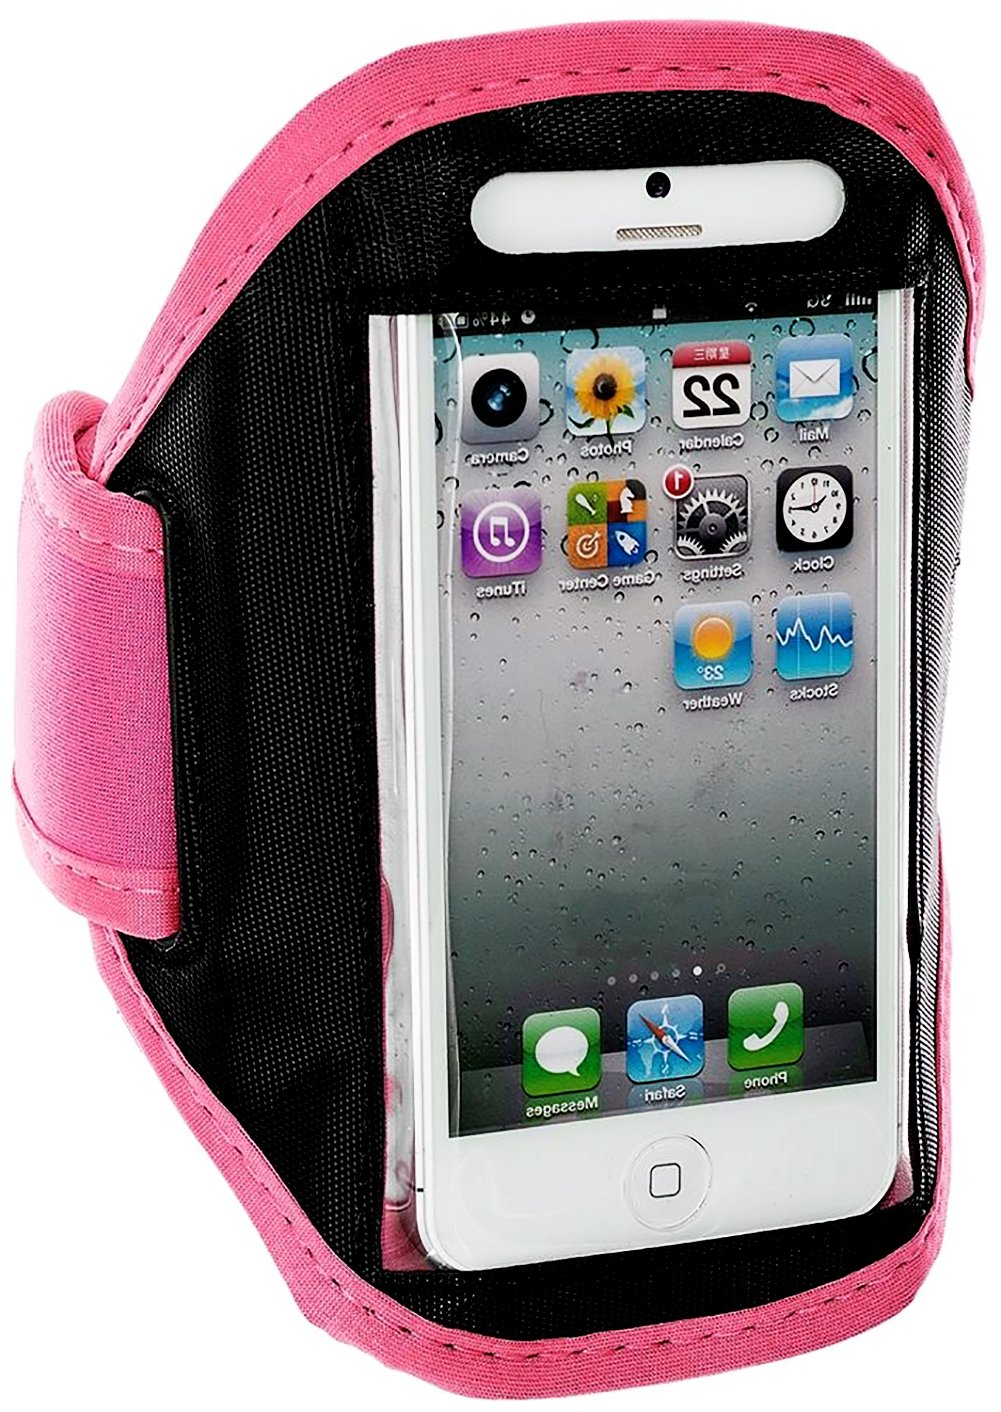 myLife Original Black and Peony Pink {Rain Resistant Velcro Secure Running Armband} Dual-Fit Jogging Arm Strap Holder for iPhone 5|5S|5C and iPod 5 (5G) 5th Generation by Apple All Ports Accessible waterproof bag pouch w armband neck strap for iphone 5 5c translucent blue black